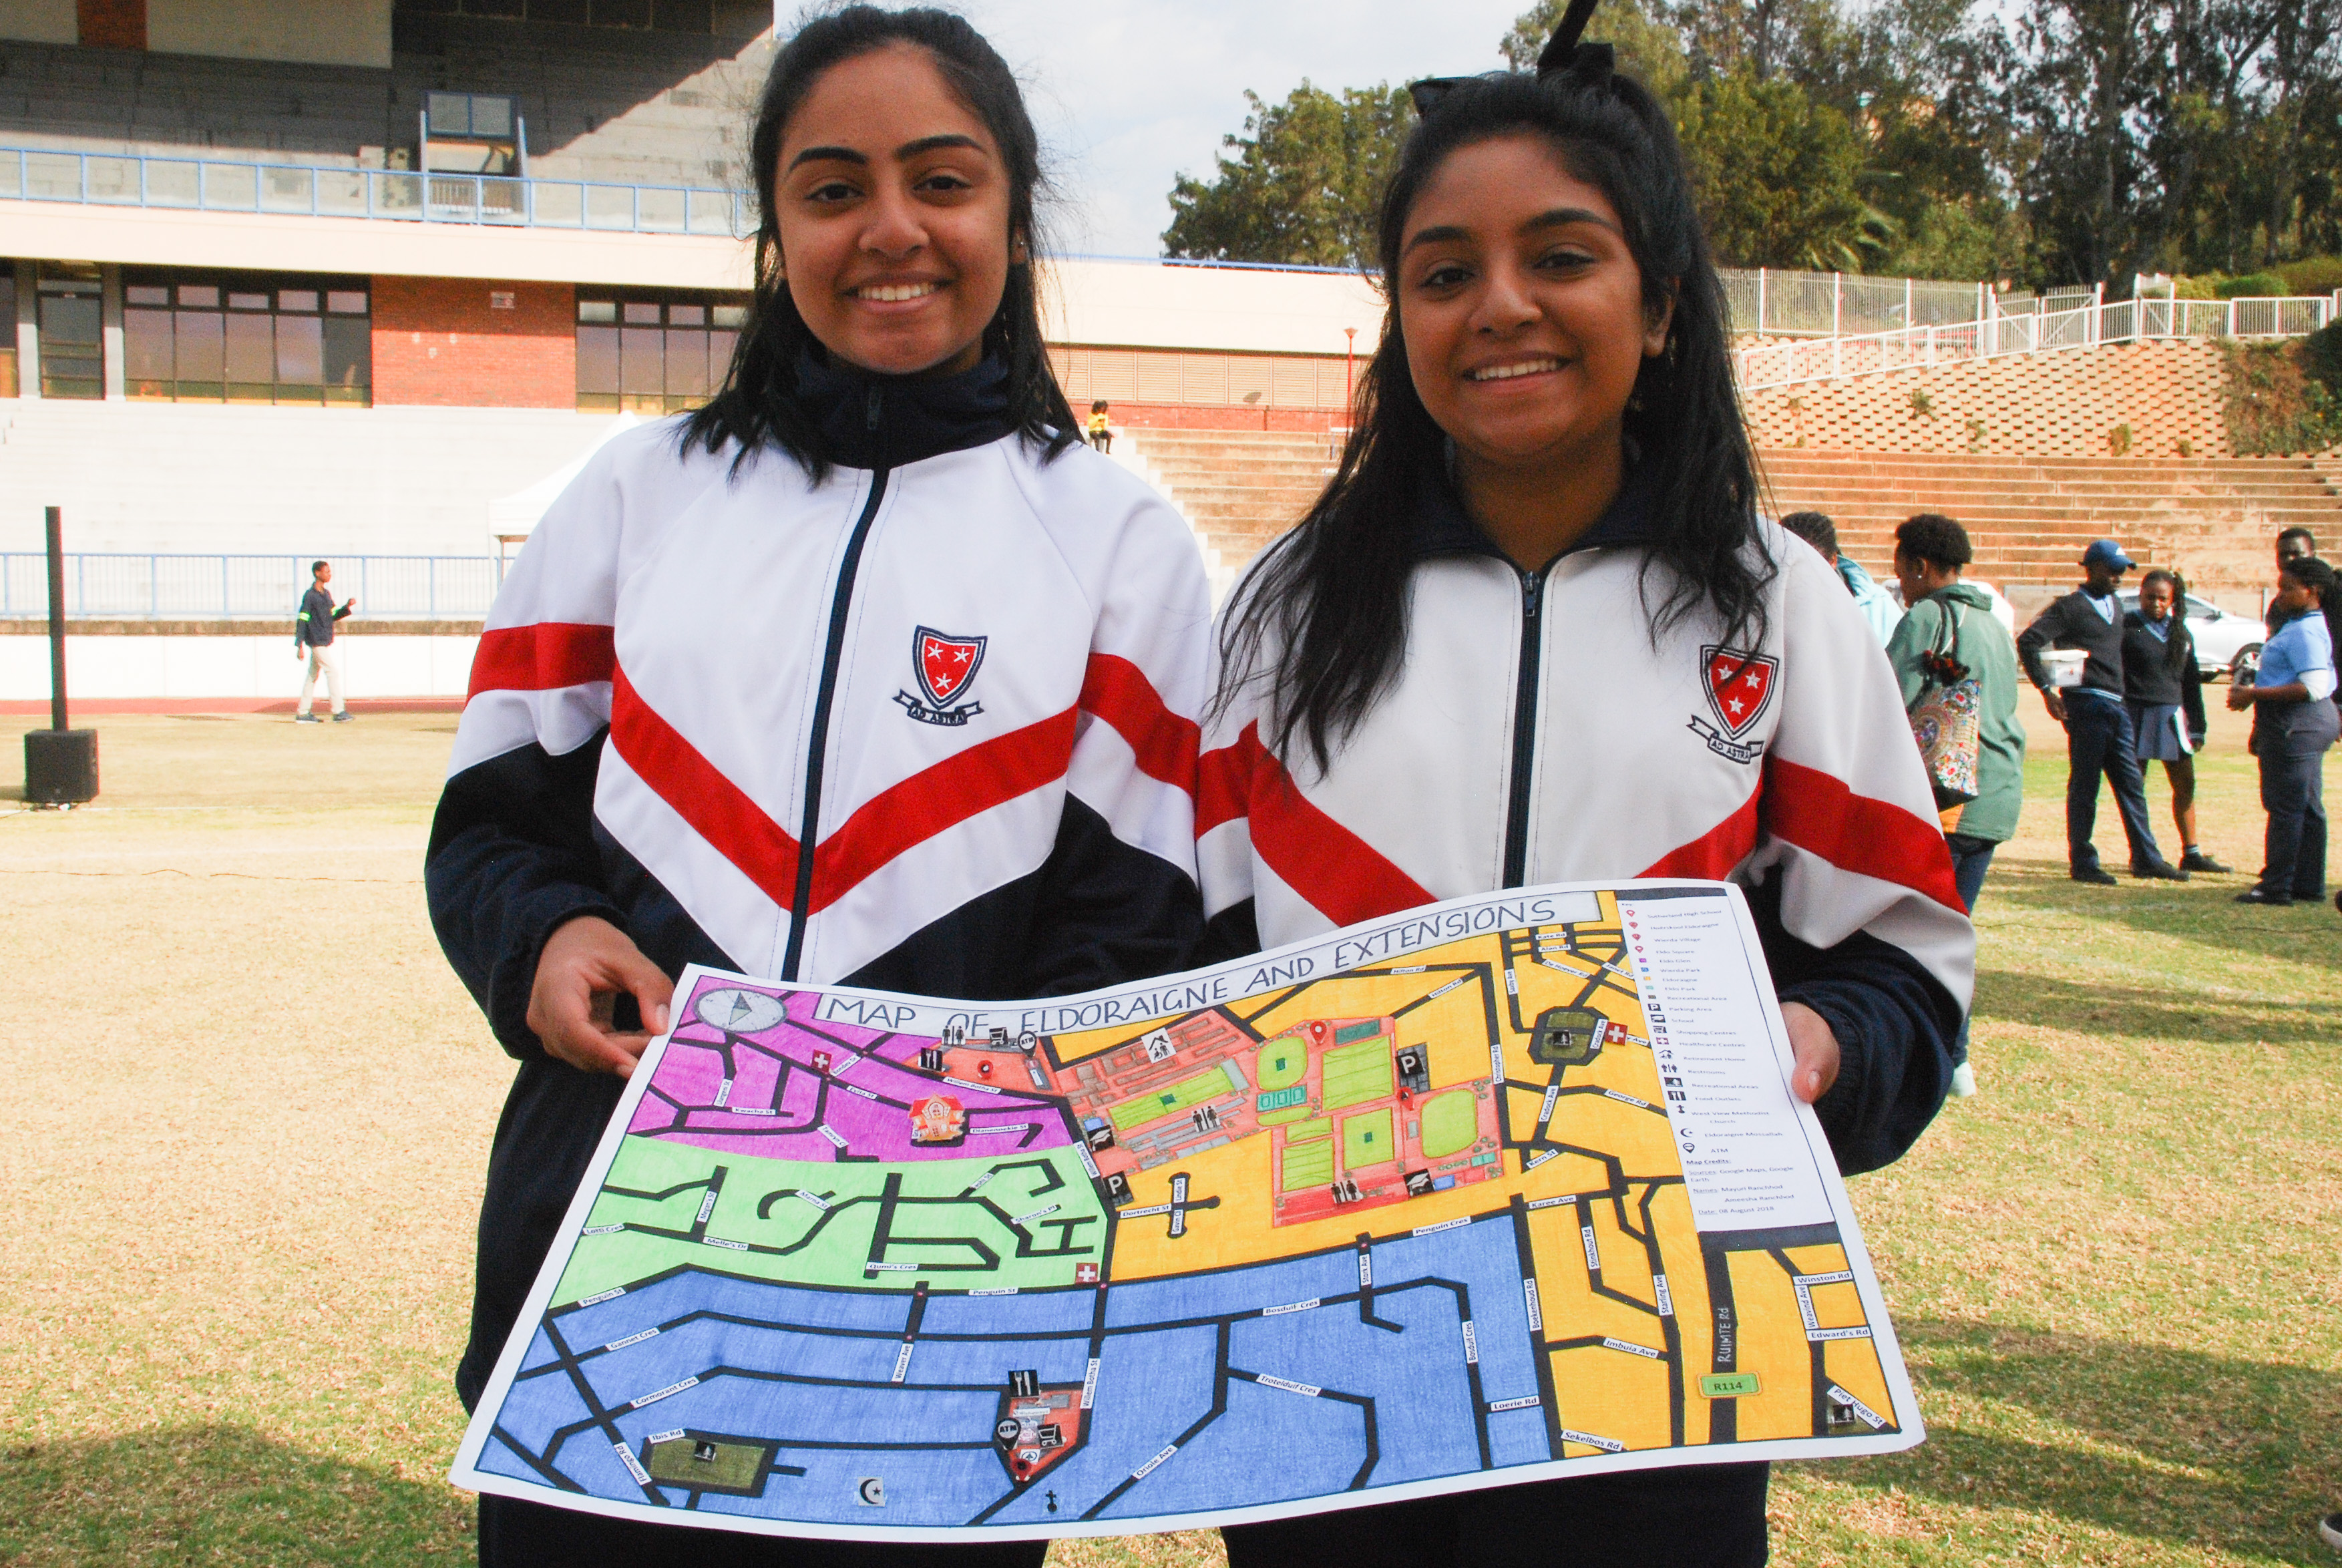 Ameesha and Mayuri Ranchhod, the winners of the mapping competition.